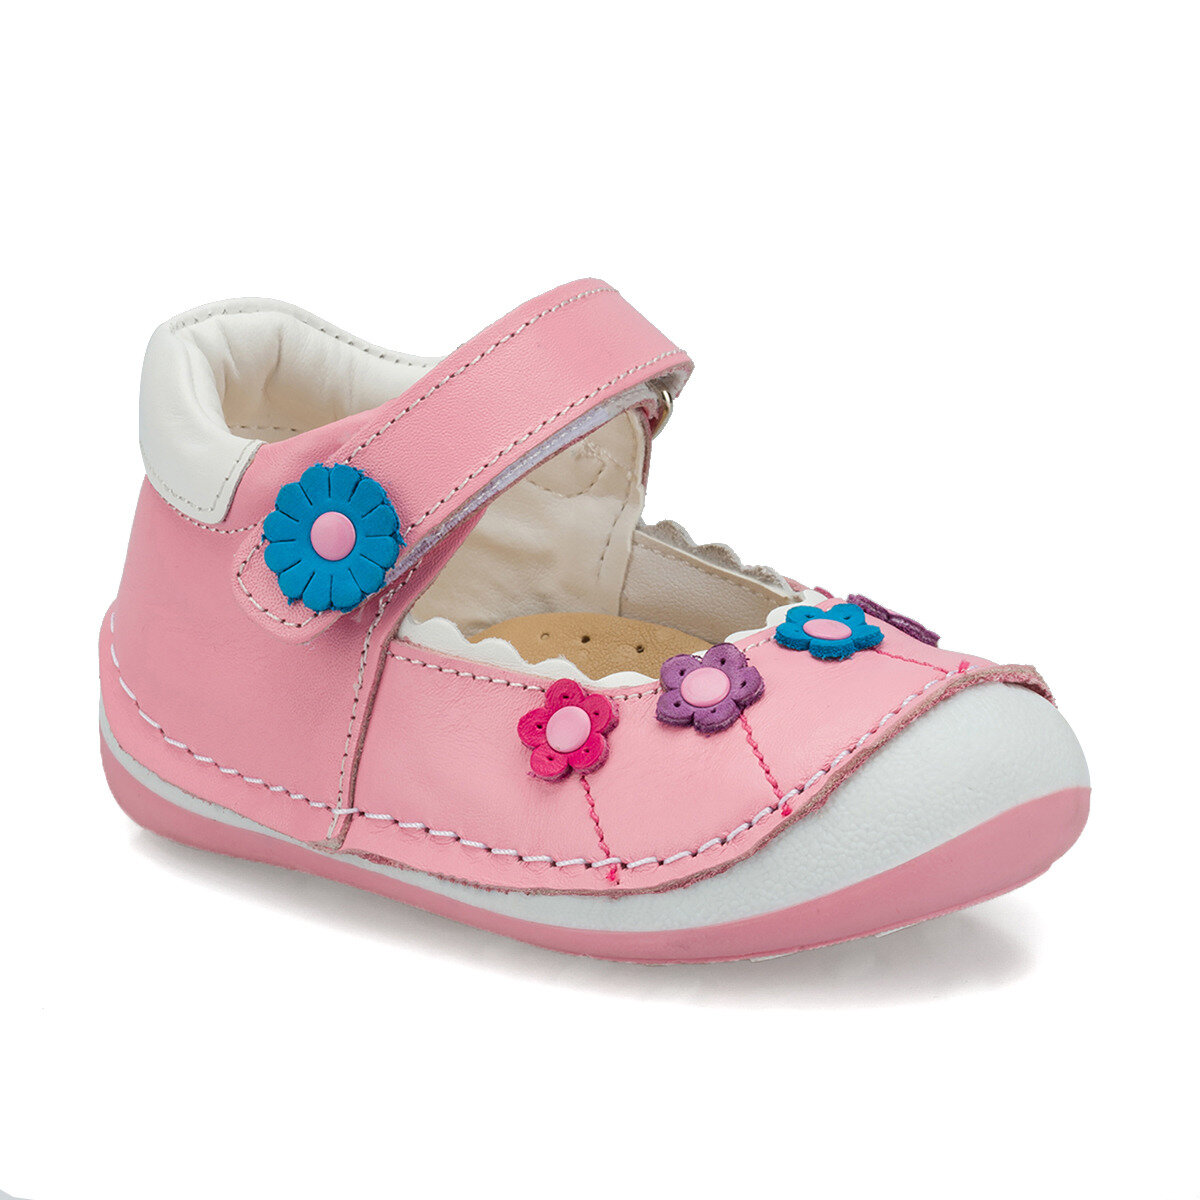 FLO 512236.I Pink Female Child Sneaker Shoes Polaris